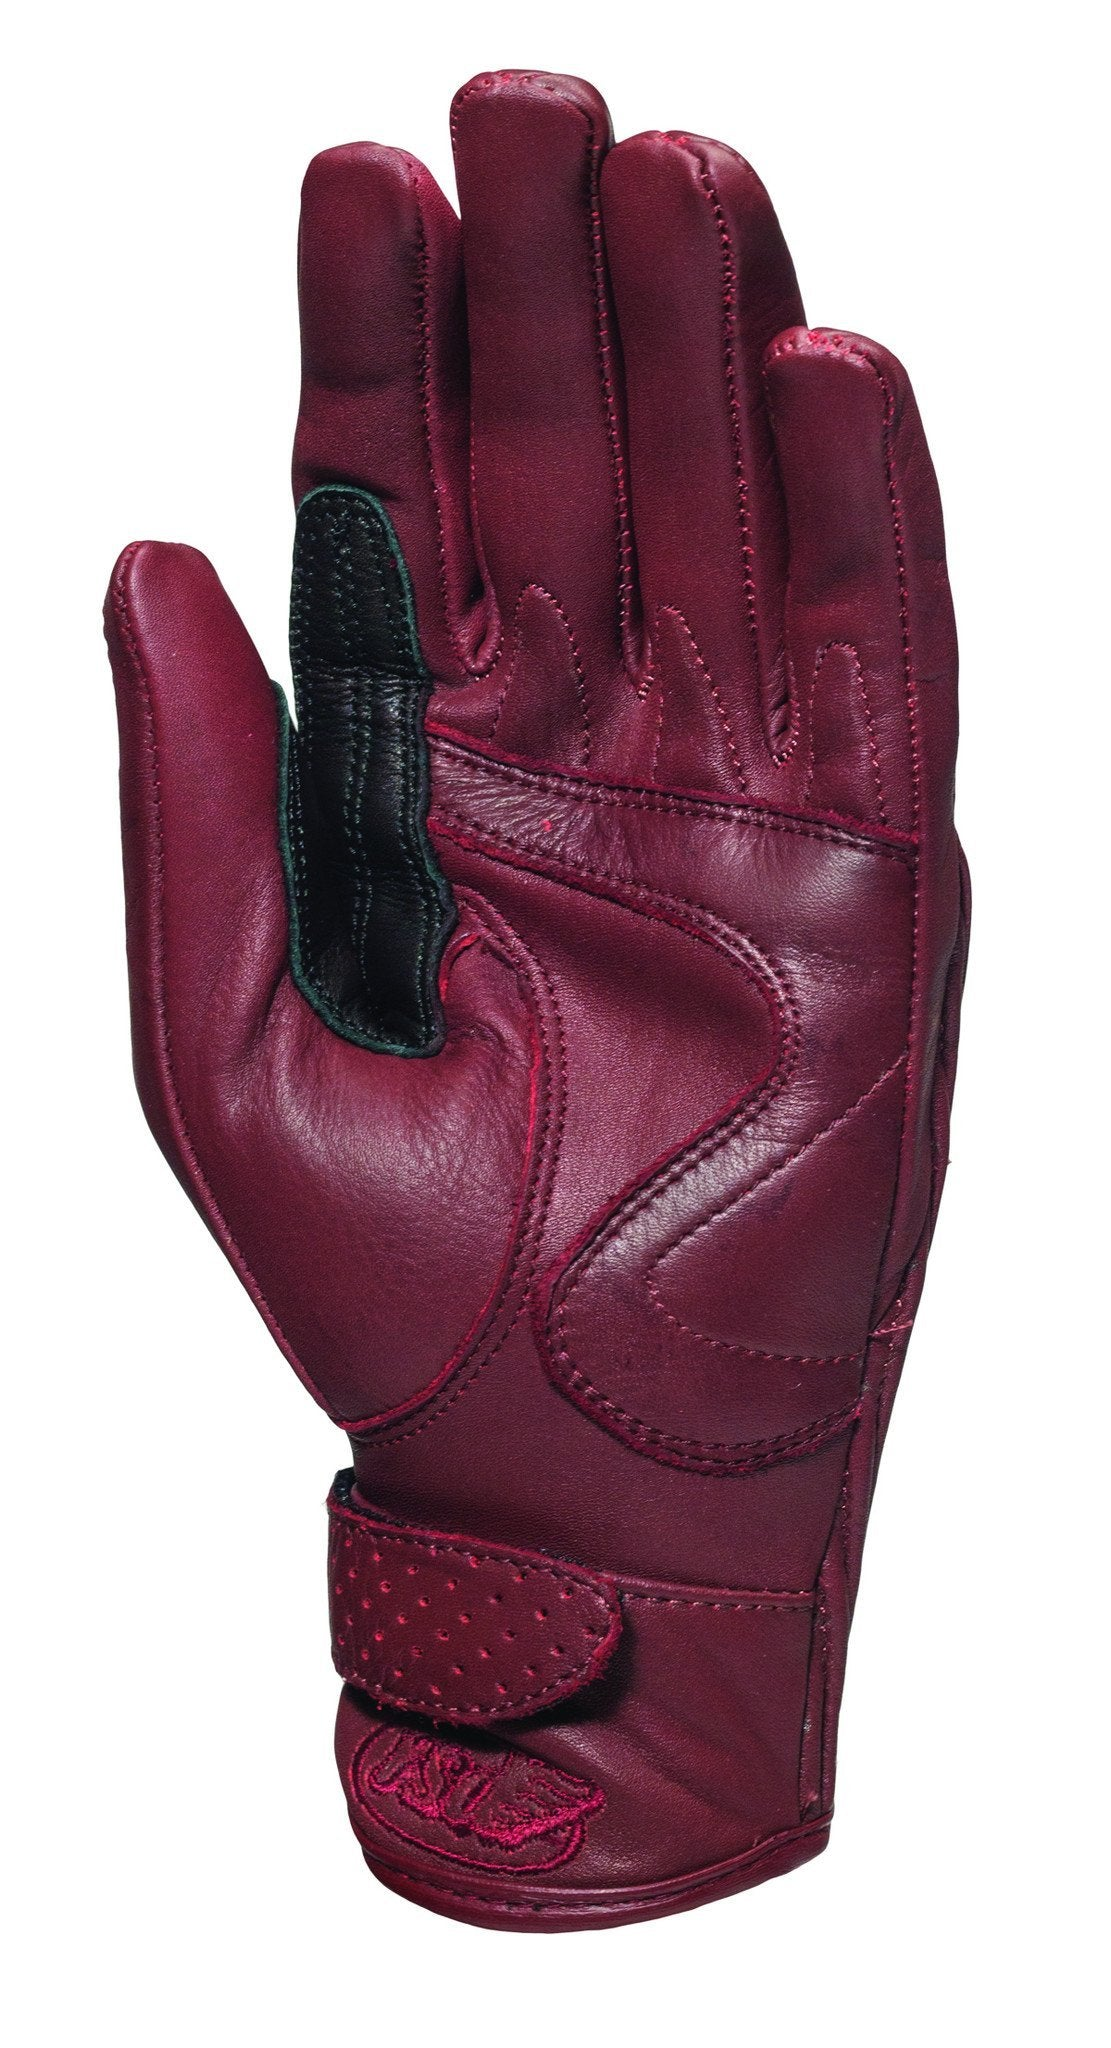 Roland Sands Design - Roland Sands Design Riot Ladies Gloves - Oxblood - Gloves - Salt Flats Clothing